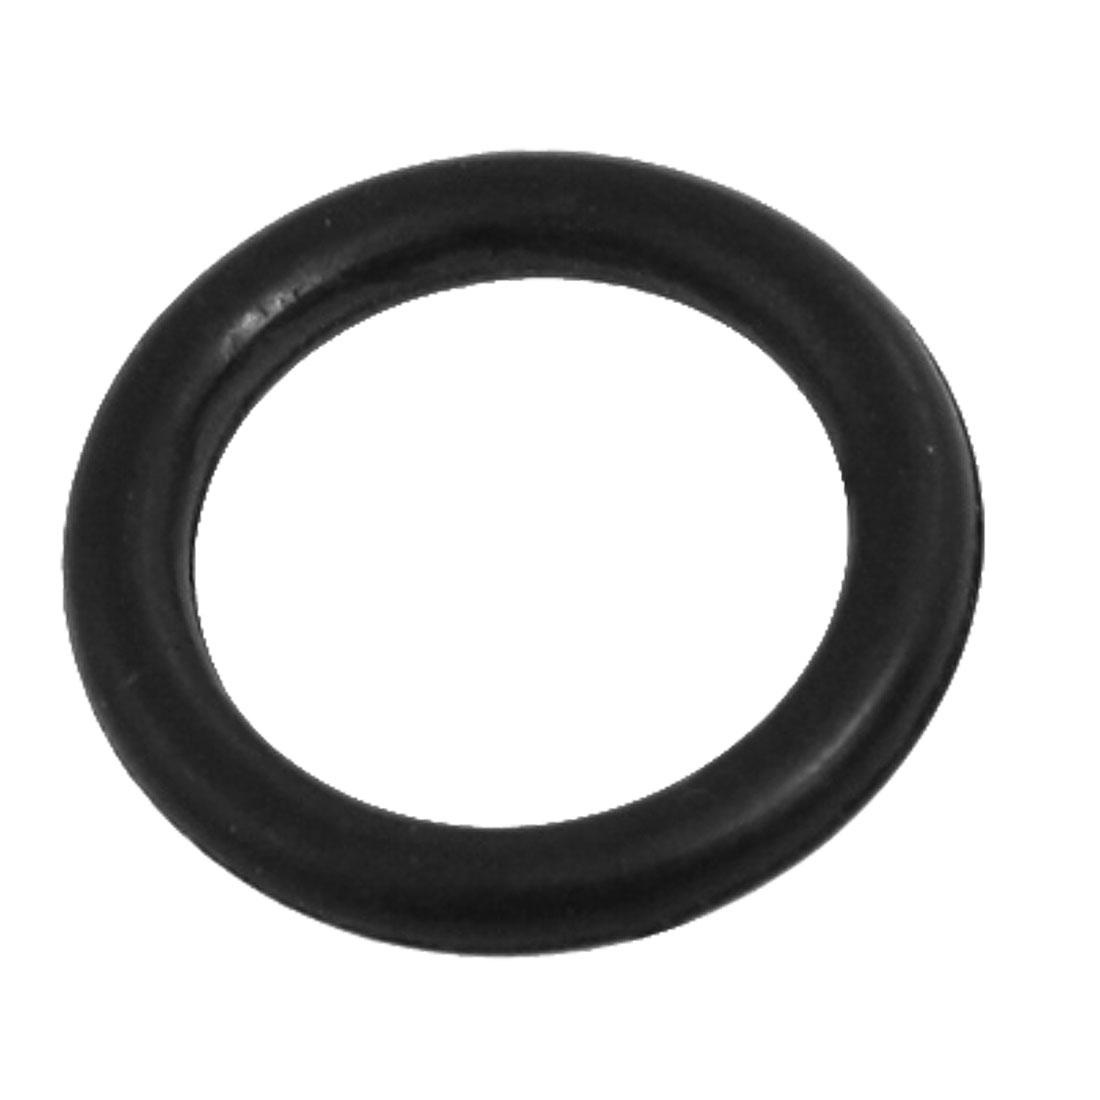 5 Pcs 17mm x 2.4mm Mechanical Rubber O Ring Oil Seal Gaskets